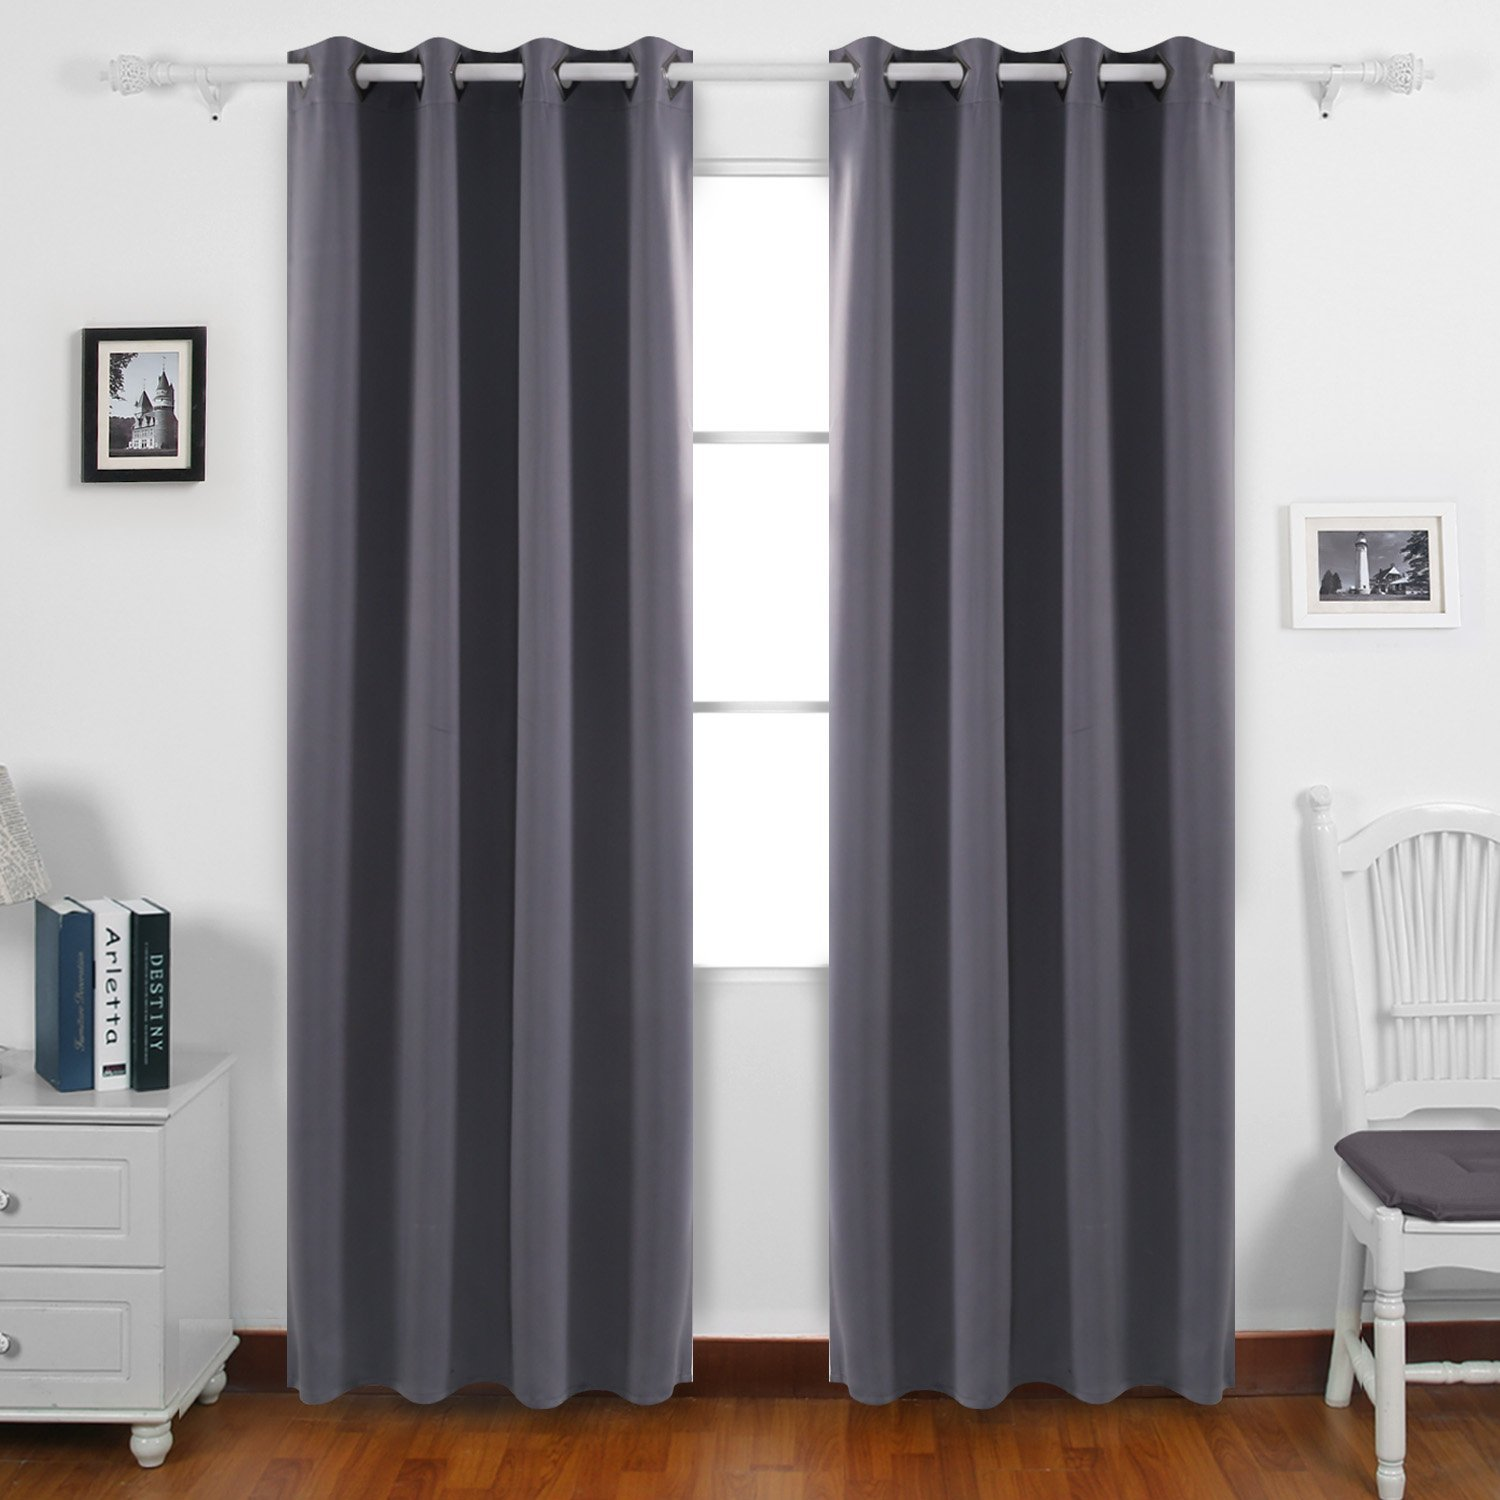 Get Quotations Deconovo Home Decorative Room Darkening Curtains With Grommet Thermal Insulated Blackout For Living 52W